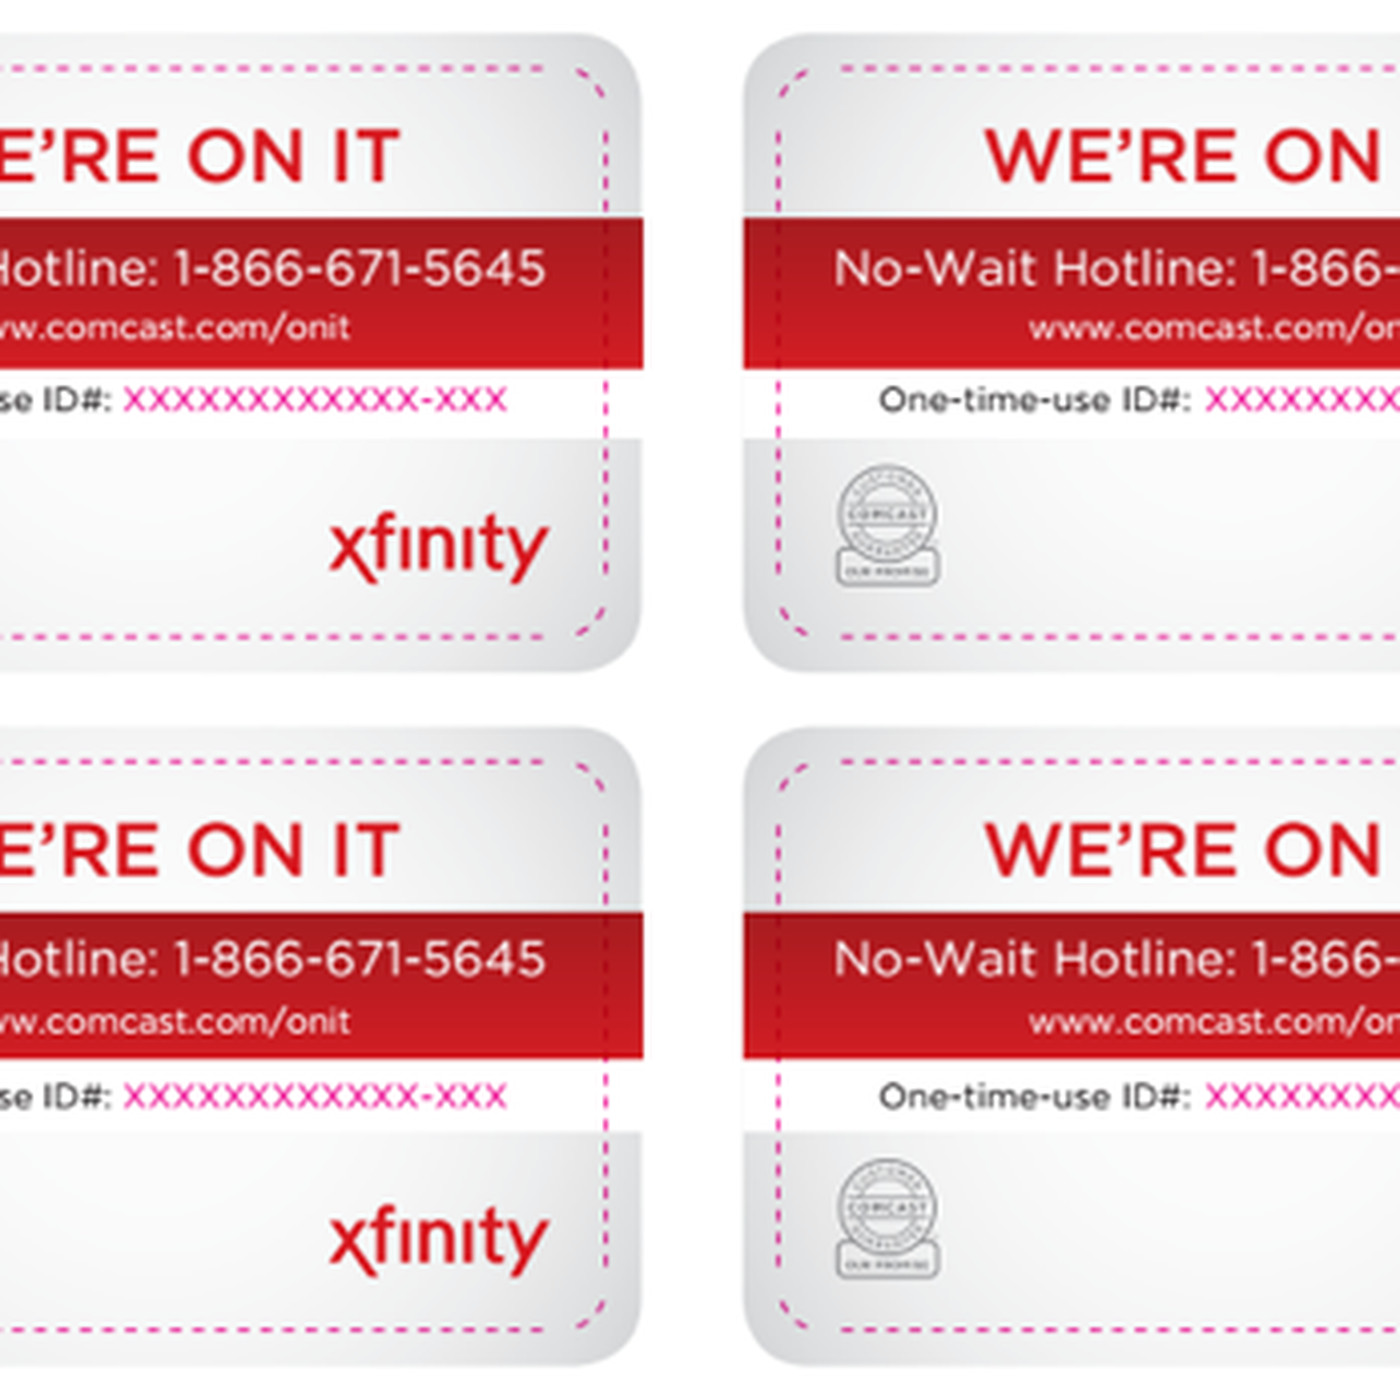 Get through to Comcast's semi-secret customer service line with one